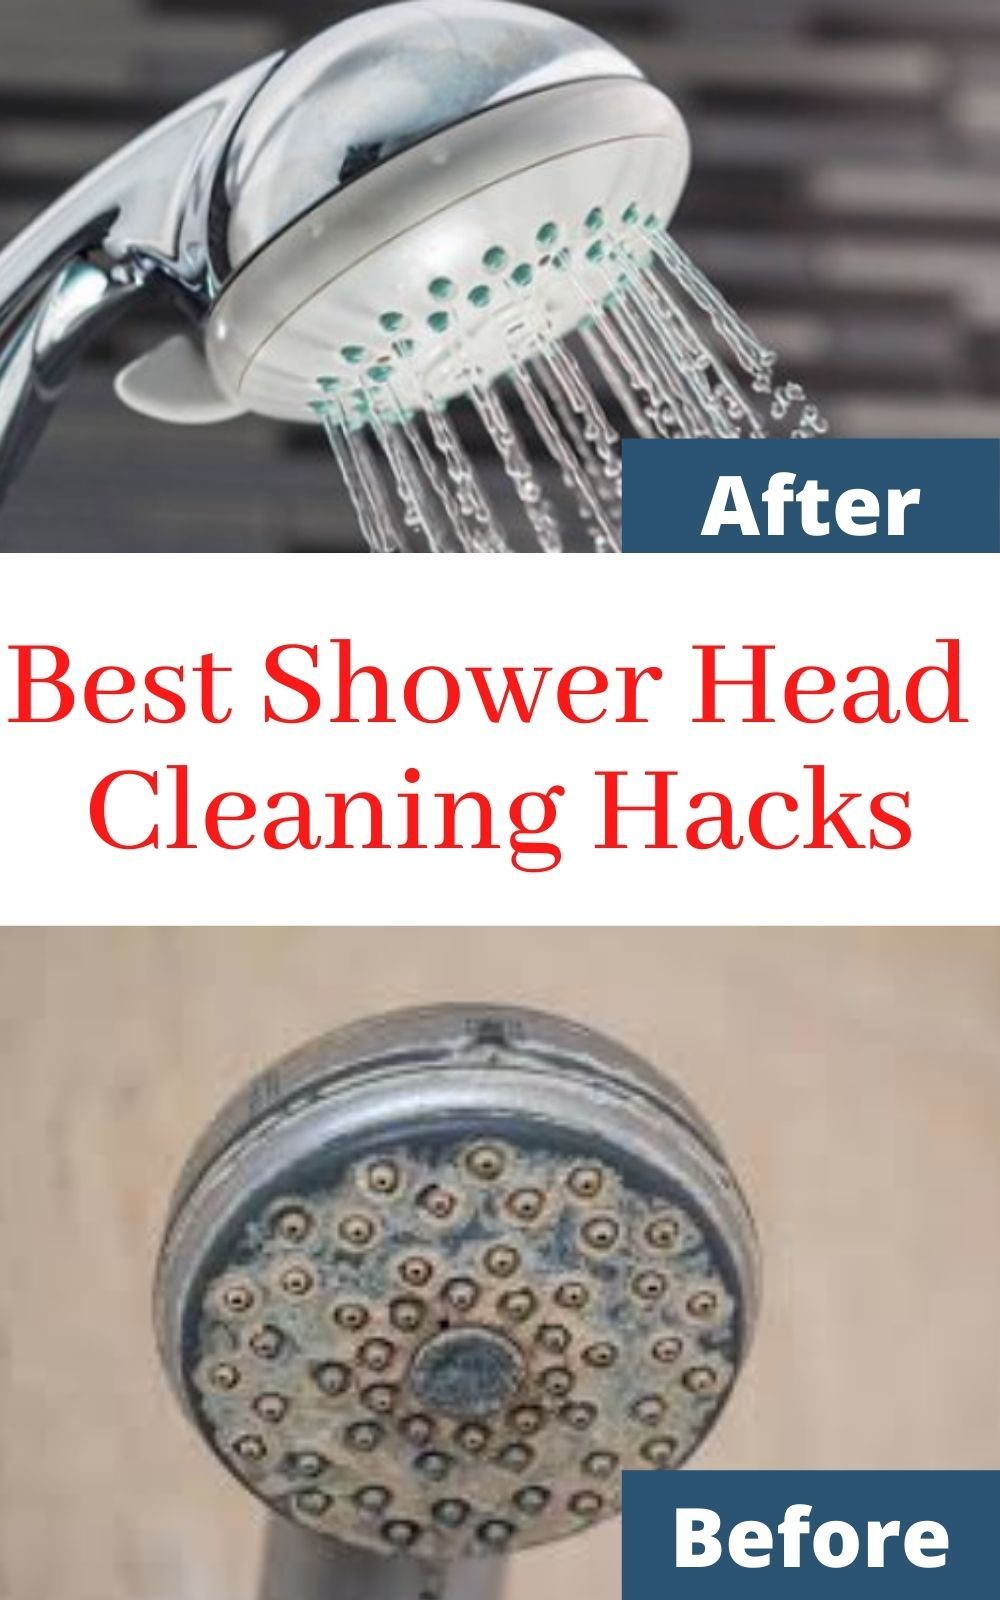 How To Get Shower Head Clean Shower Cleaner Shower Heads Cleaning Shower Head